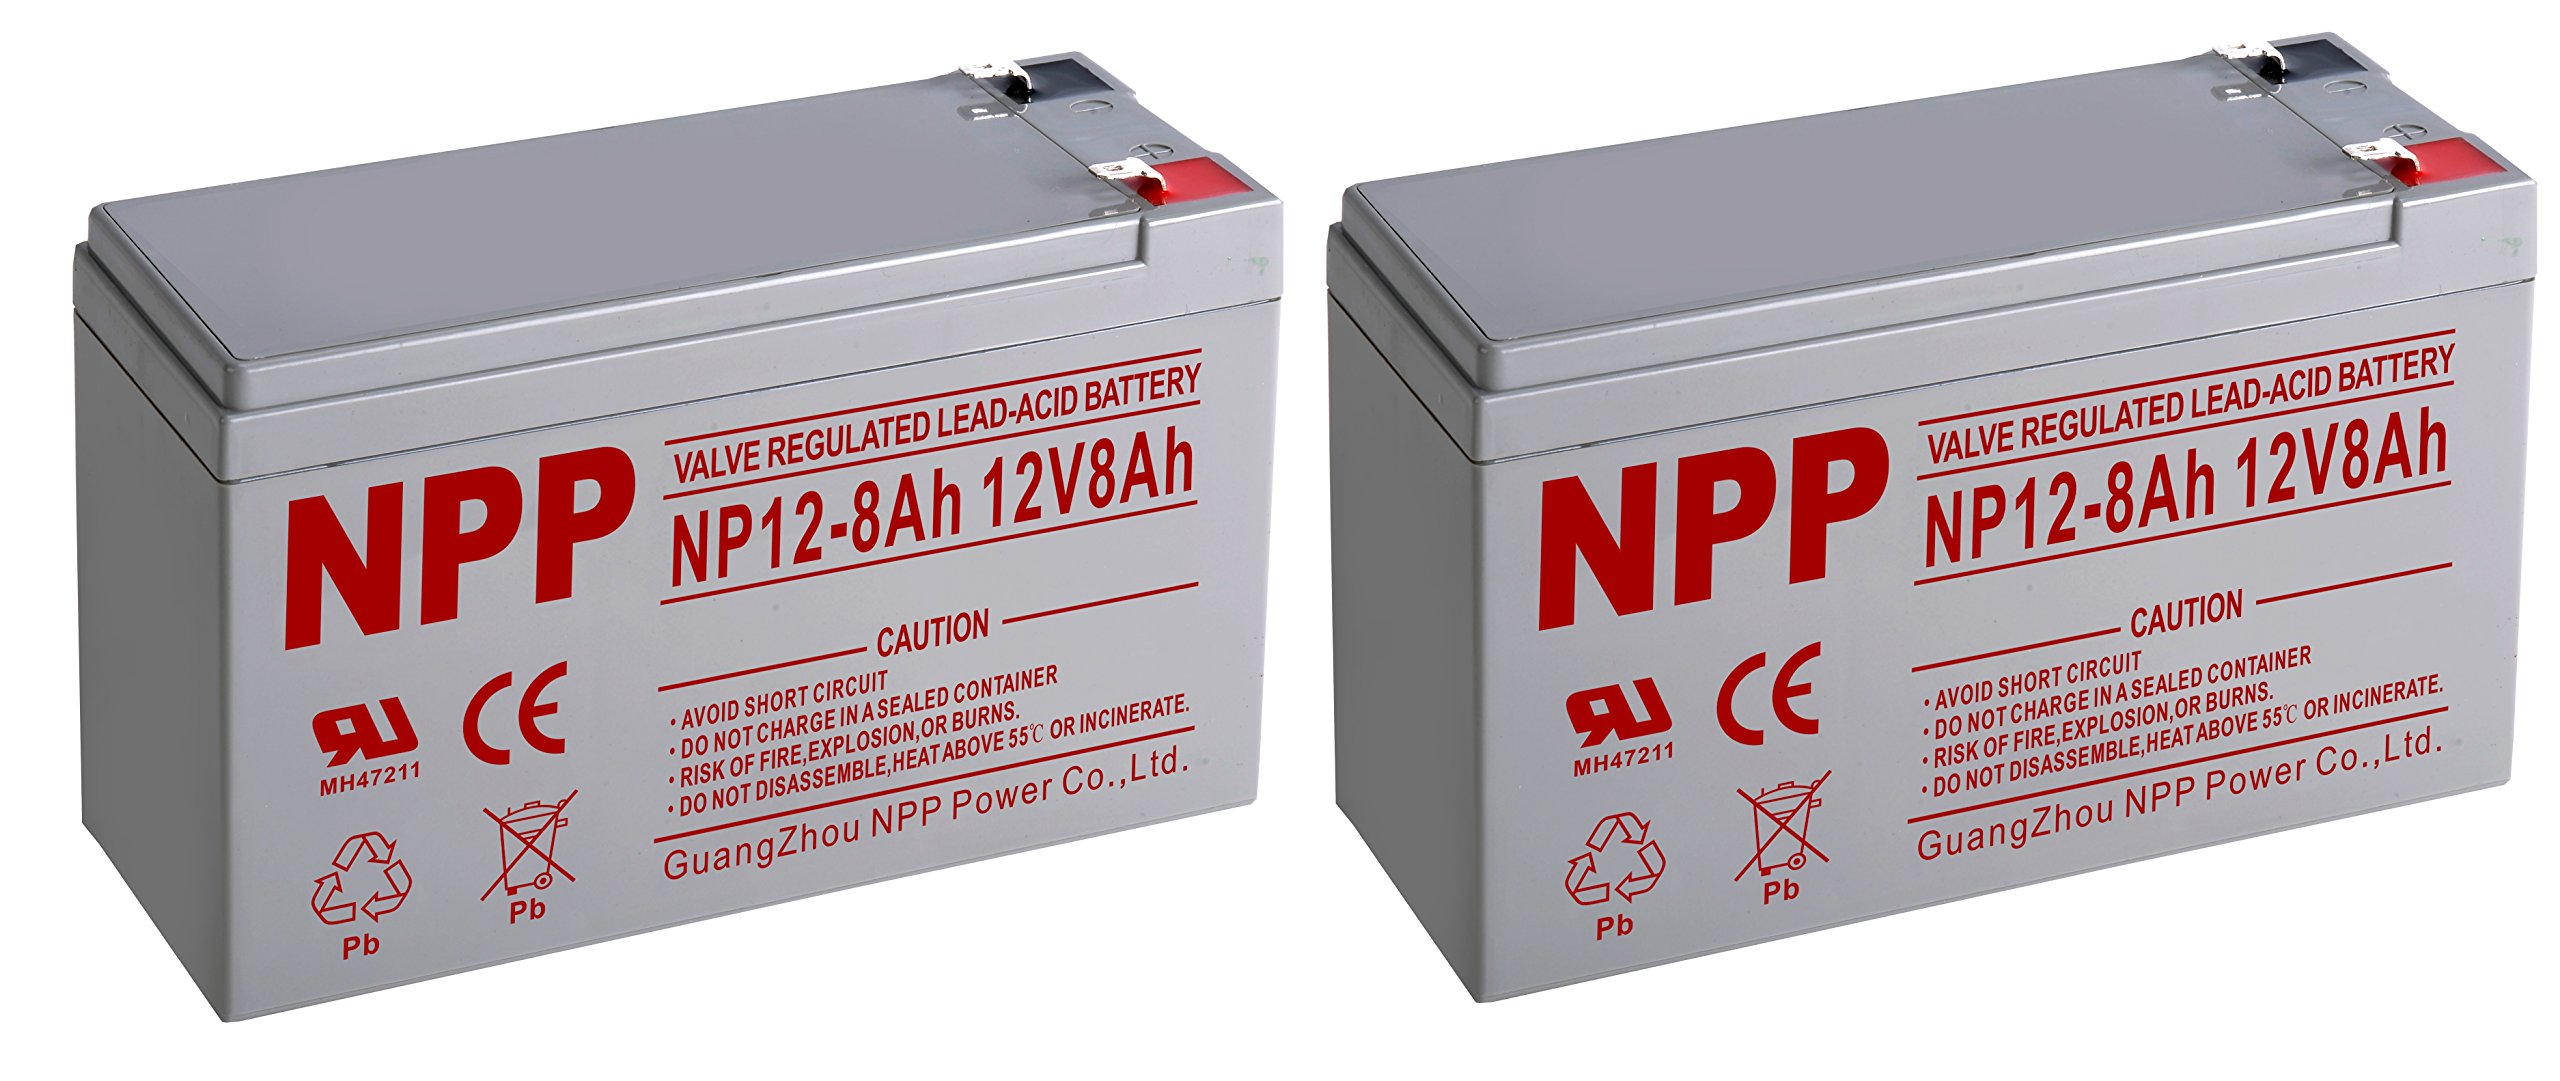 NPP NP12-8Ah Sealed Lead Acid 12Volt 8Ah Battery With F2 Style Terminals/(2pcs)